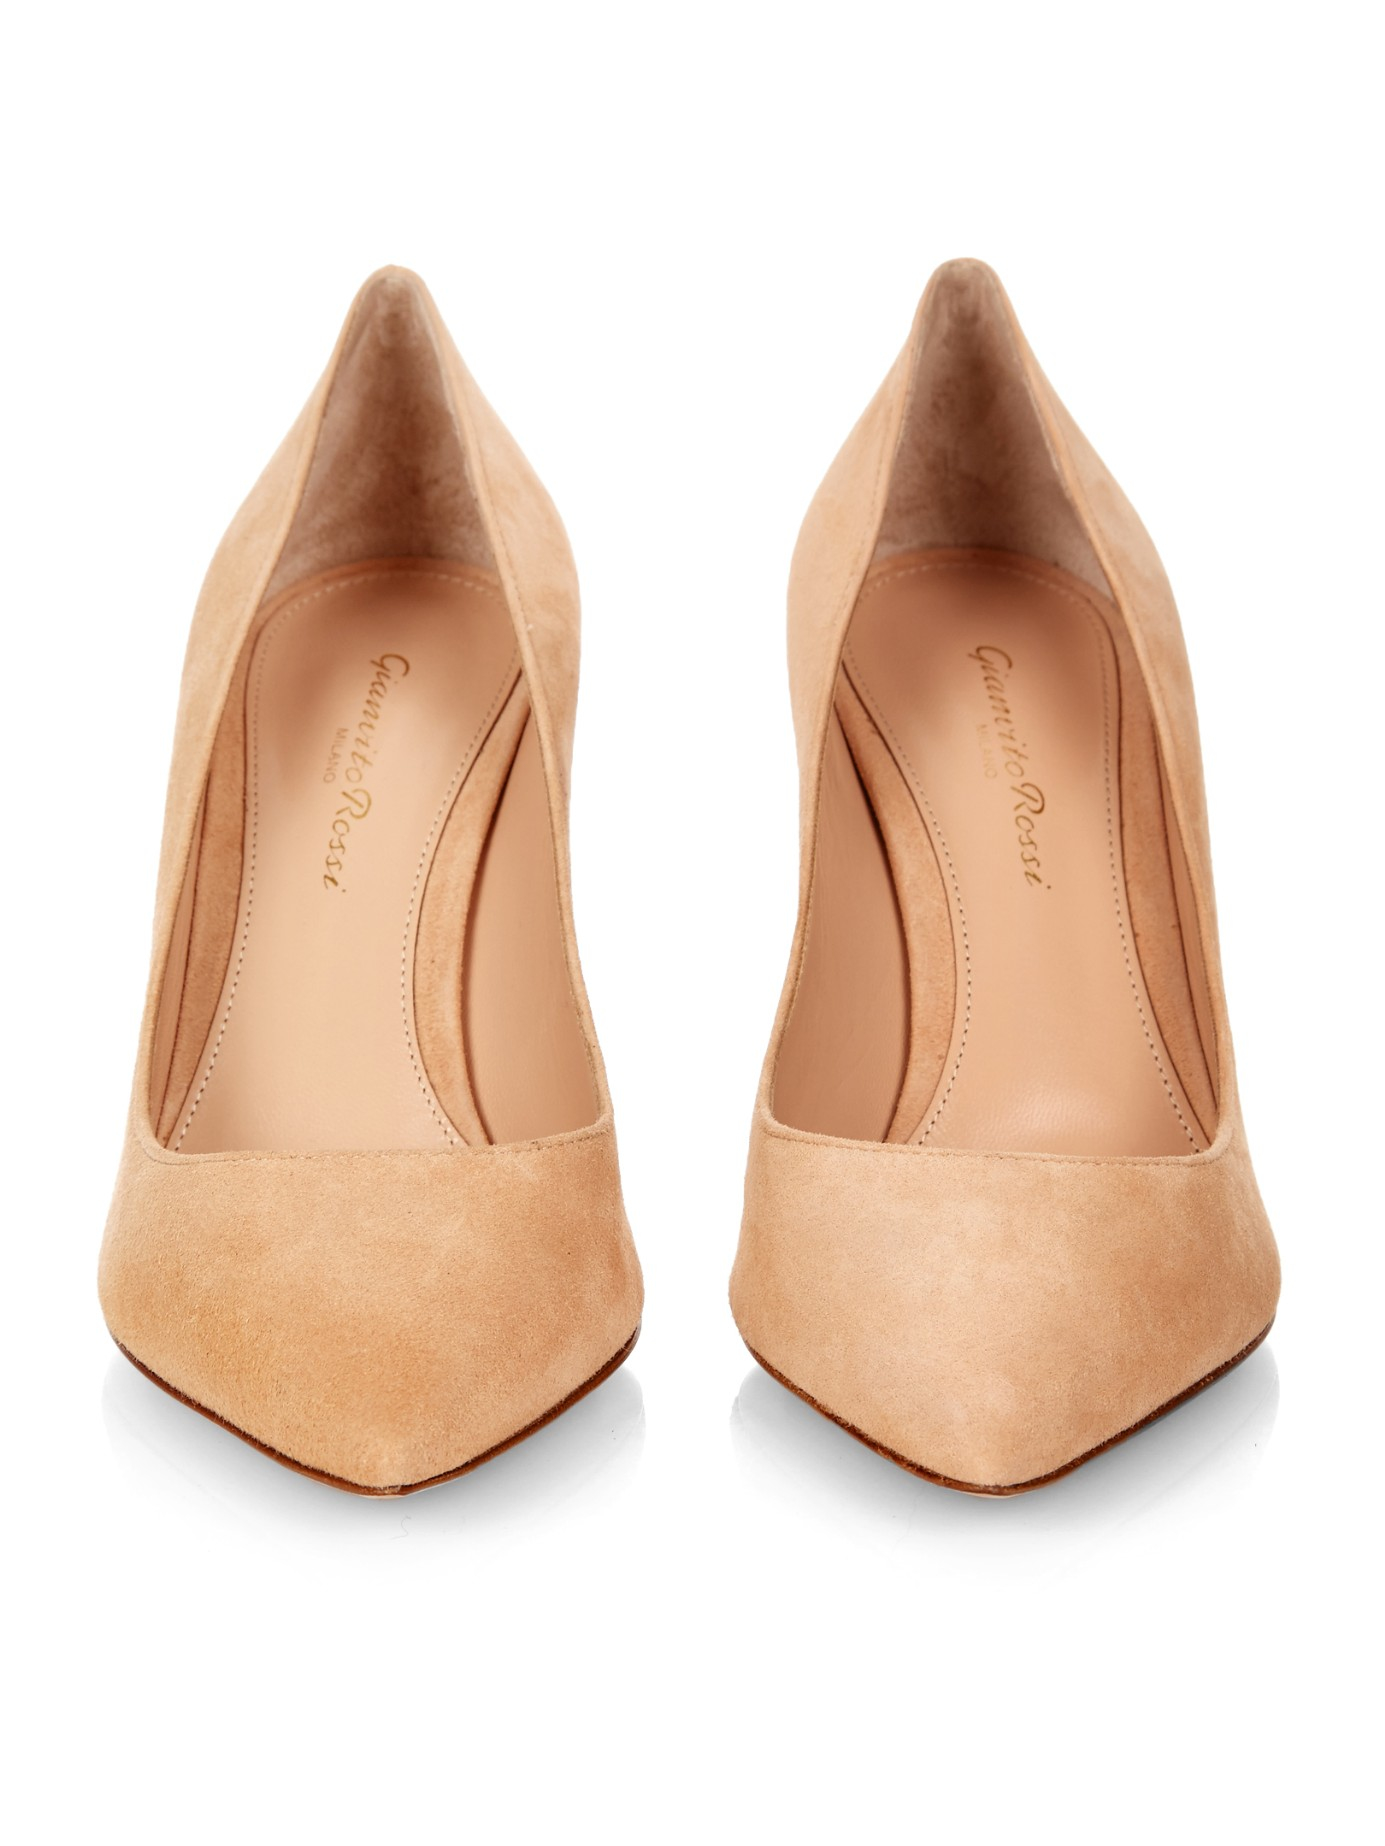 558aeed40c0 Lyst - Gianvito Rossi Business Pointed-Toe Suede Pumps in Natural